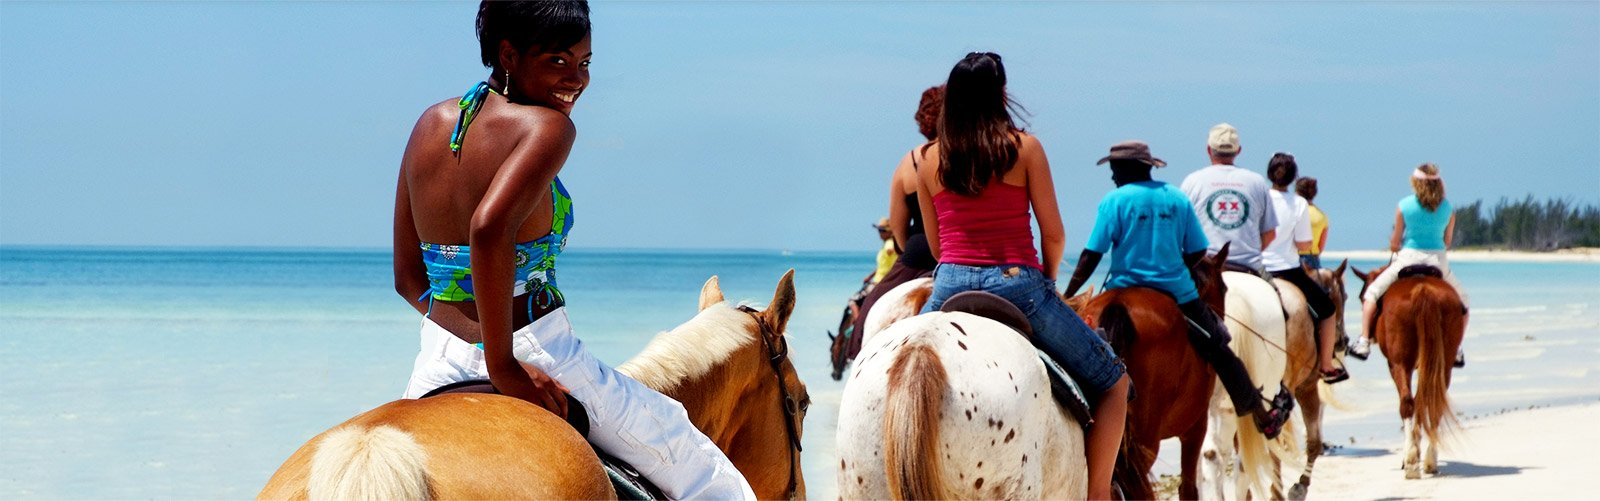 Horseback riding on a beach